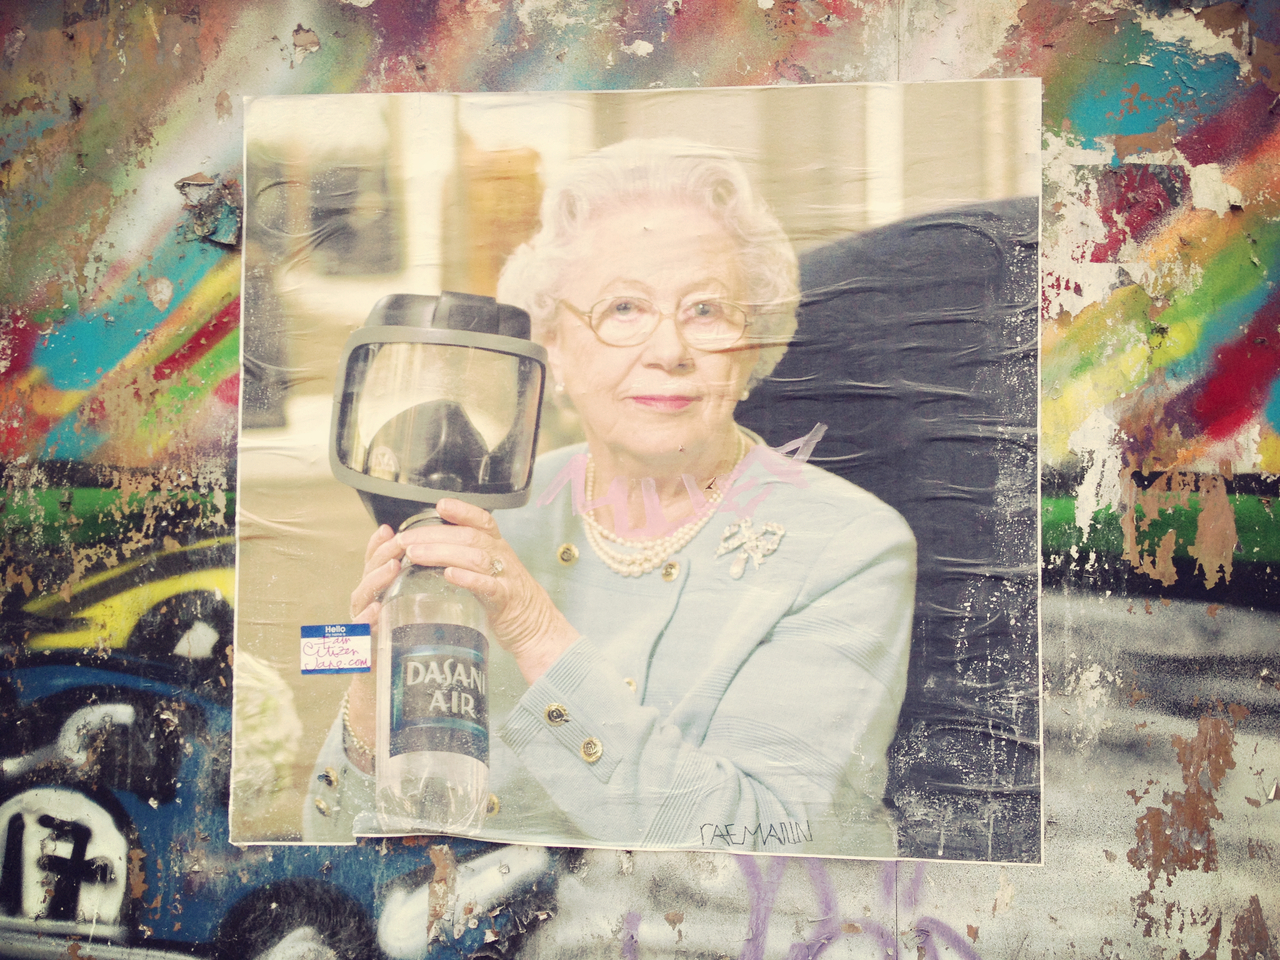 Grandma on a Wall #peppersearching #pepper #photos #graffiti #wall #nyc